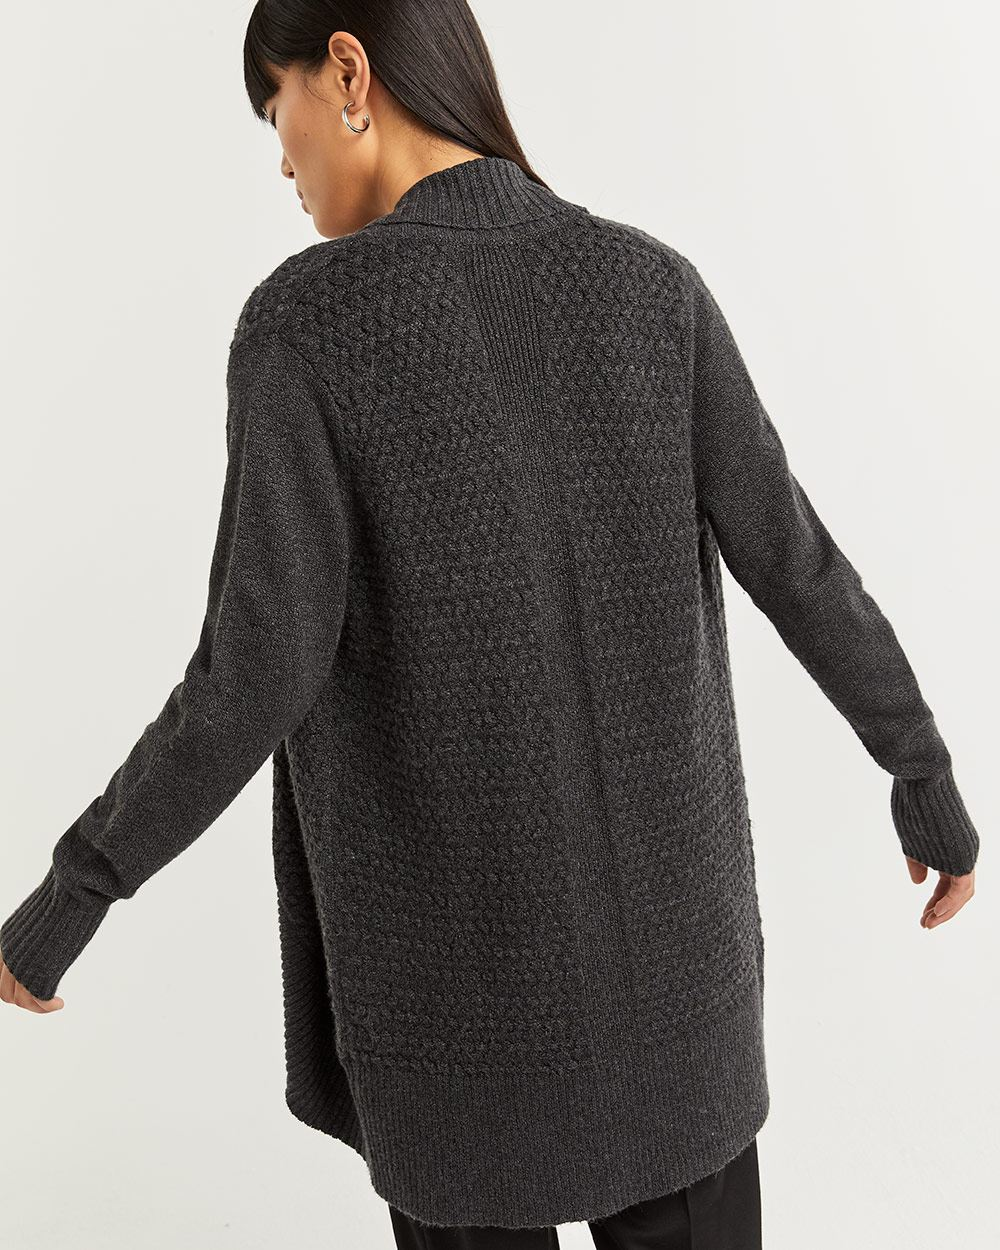 Cocoon Cardigan with Basket Stitches